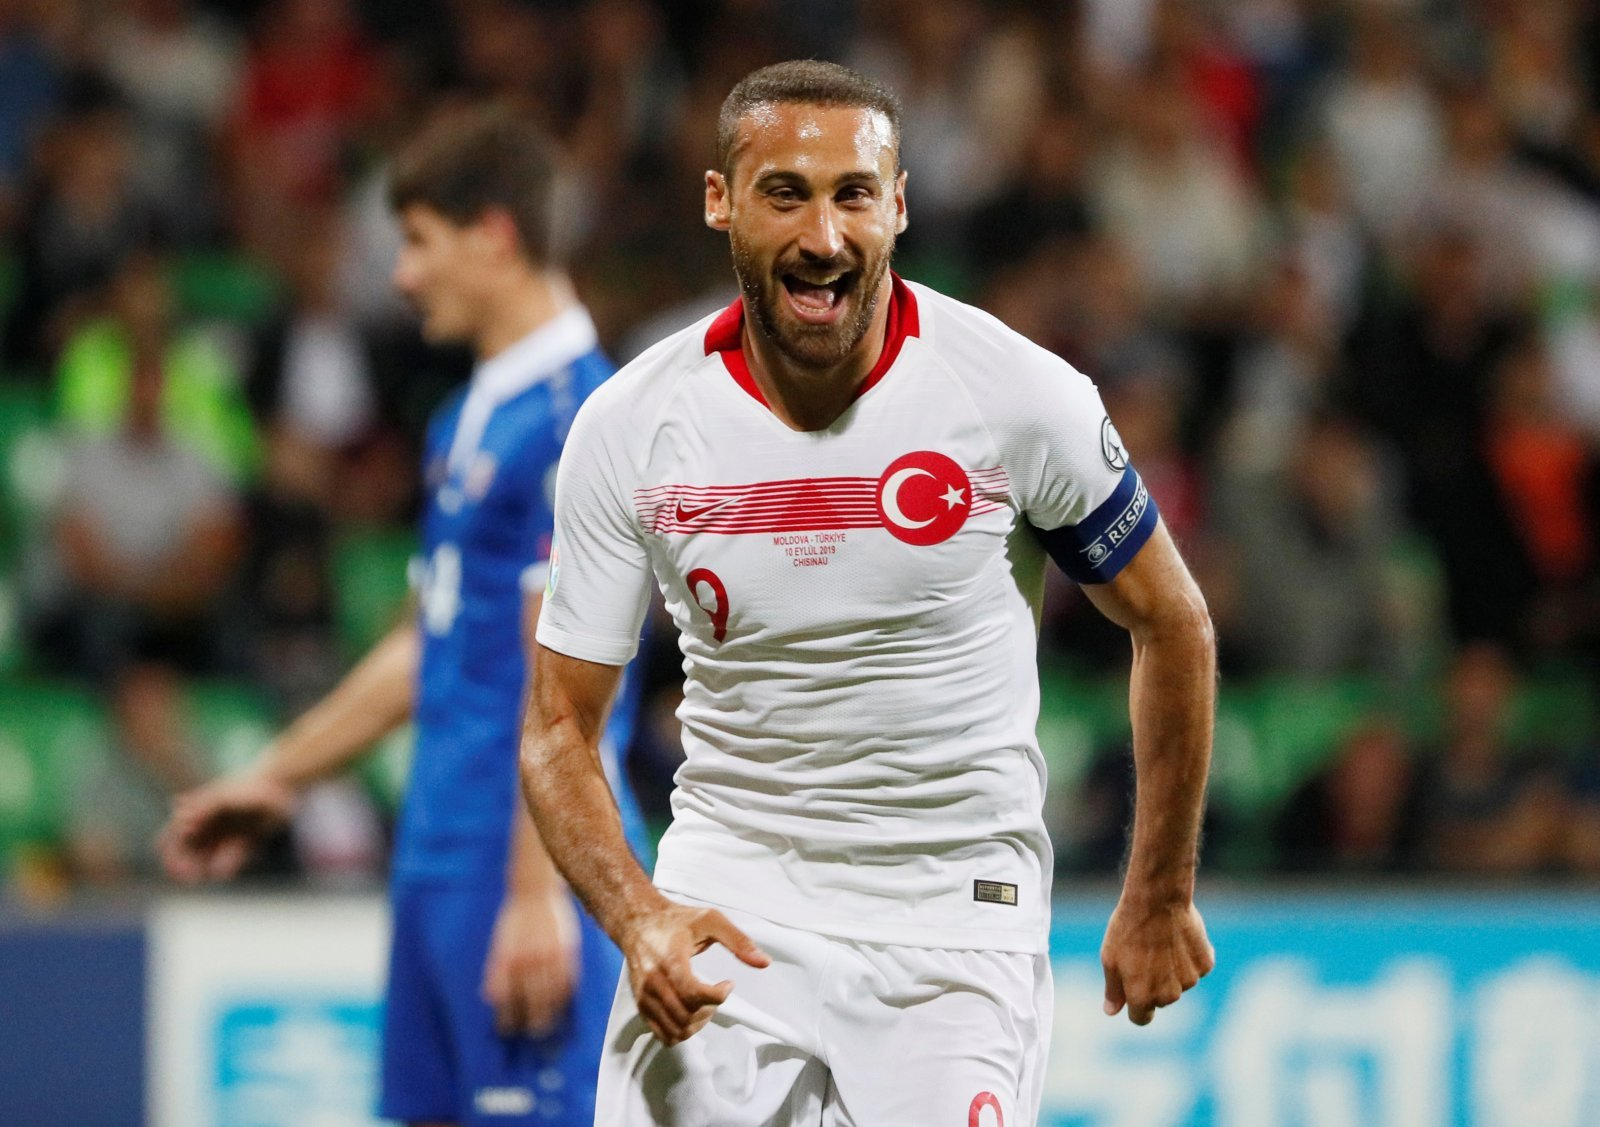 Everton: These fans want to see Cenk Tosun given a chance